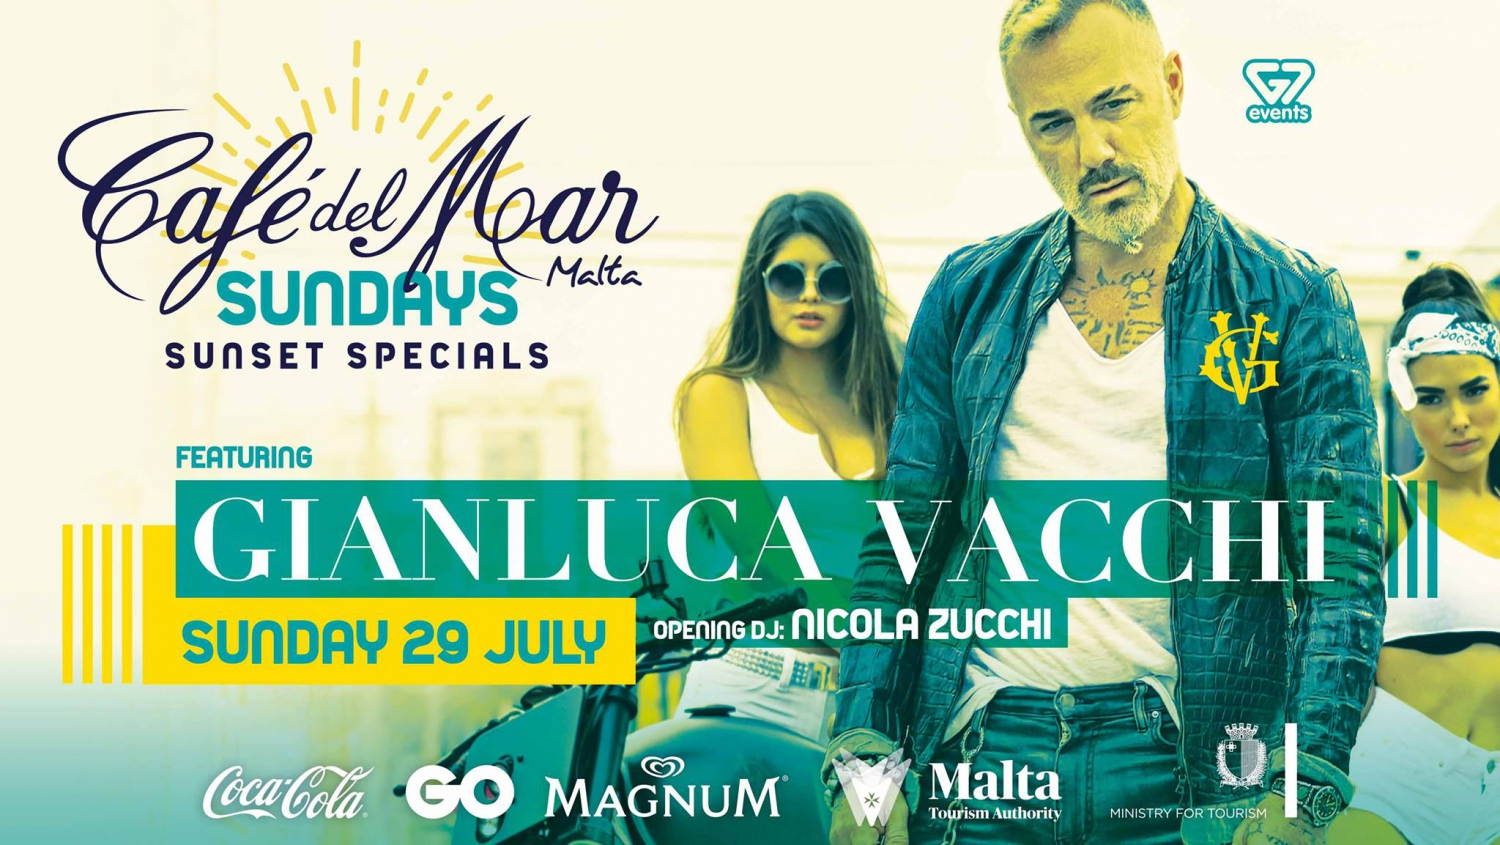 Gianluca Vacchi at Café del Mar